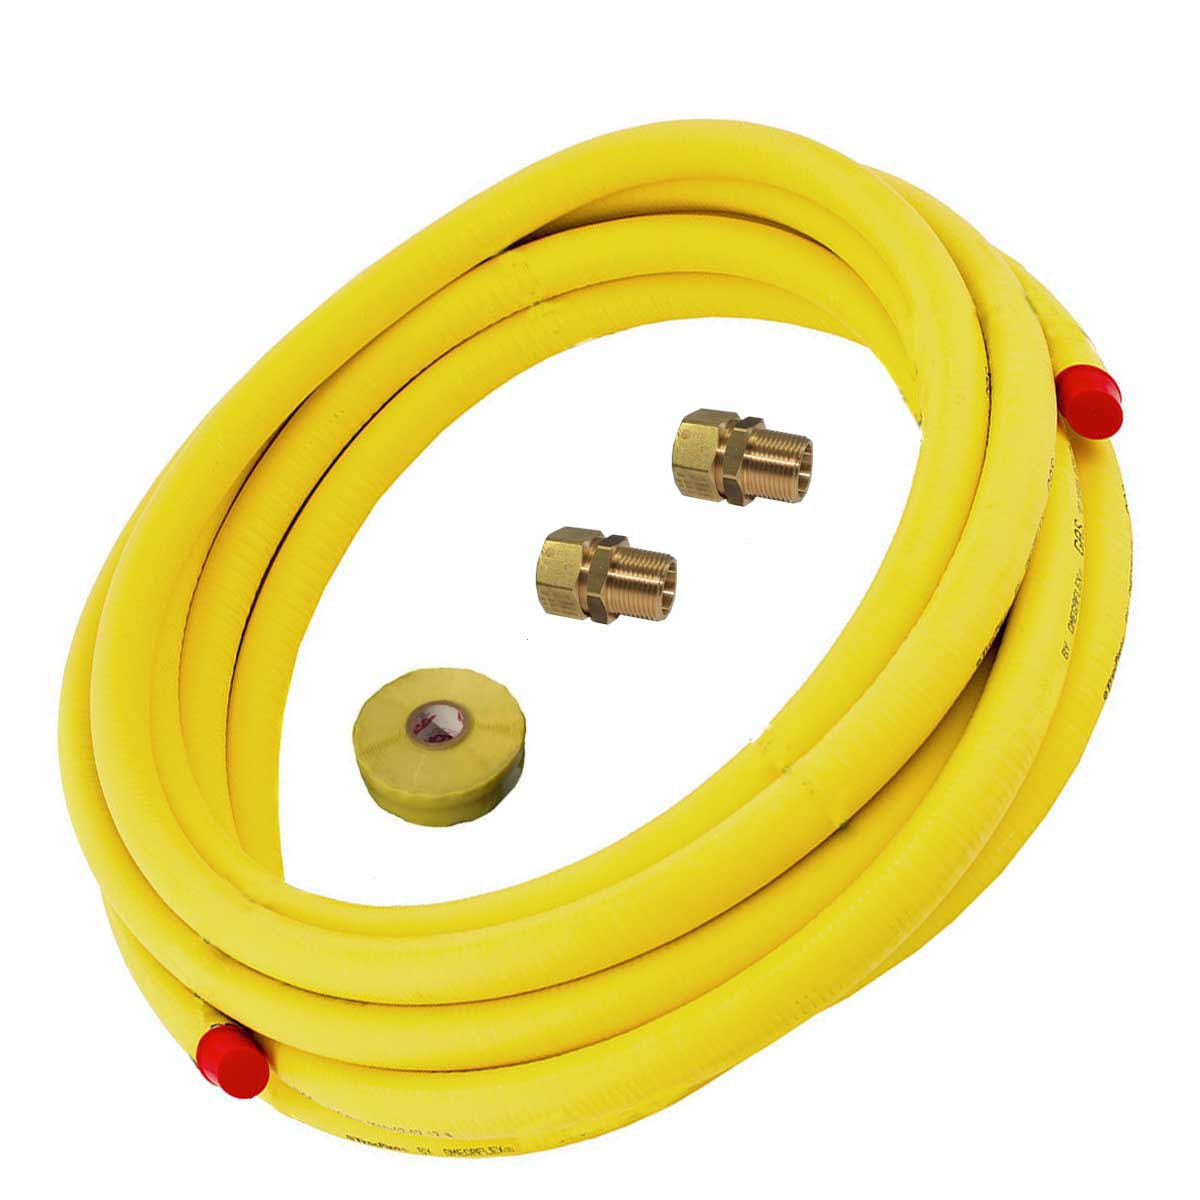 Tracpipe Flexible Gas Pipe Coil and BSP Fittings Pack